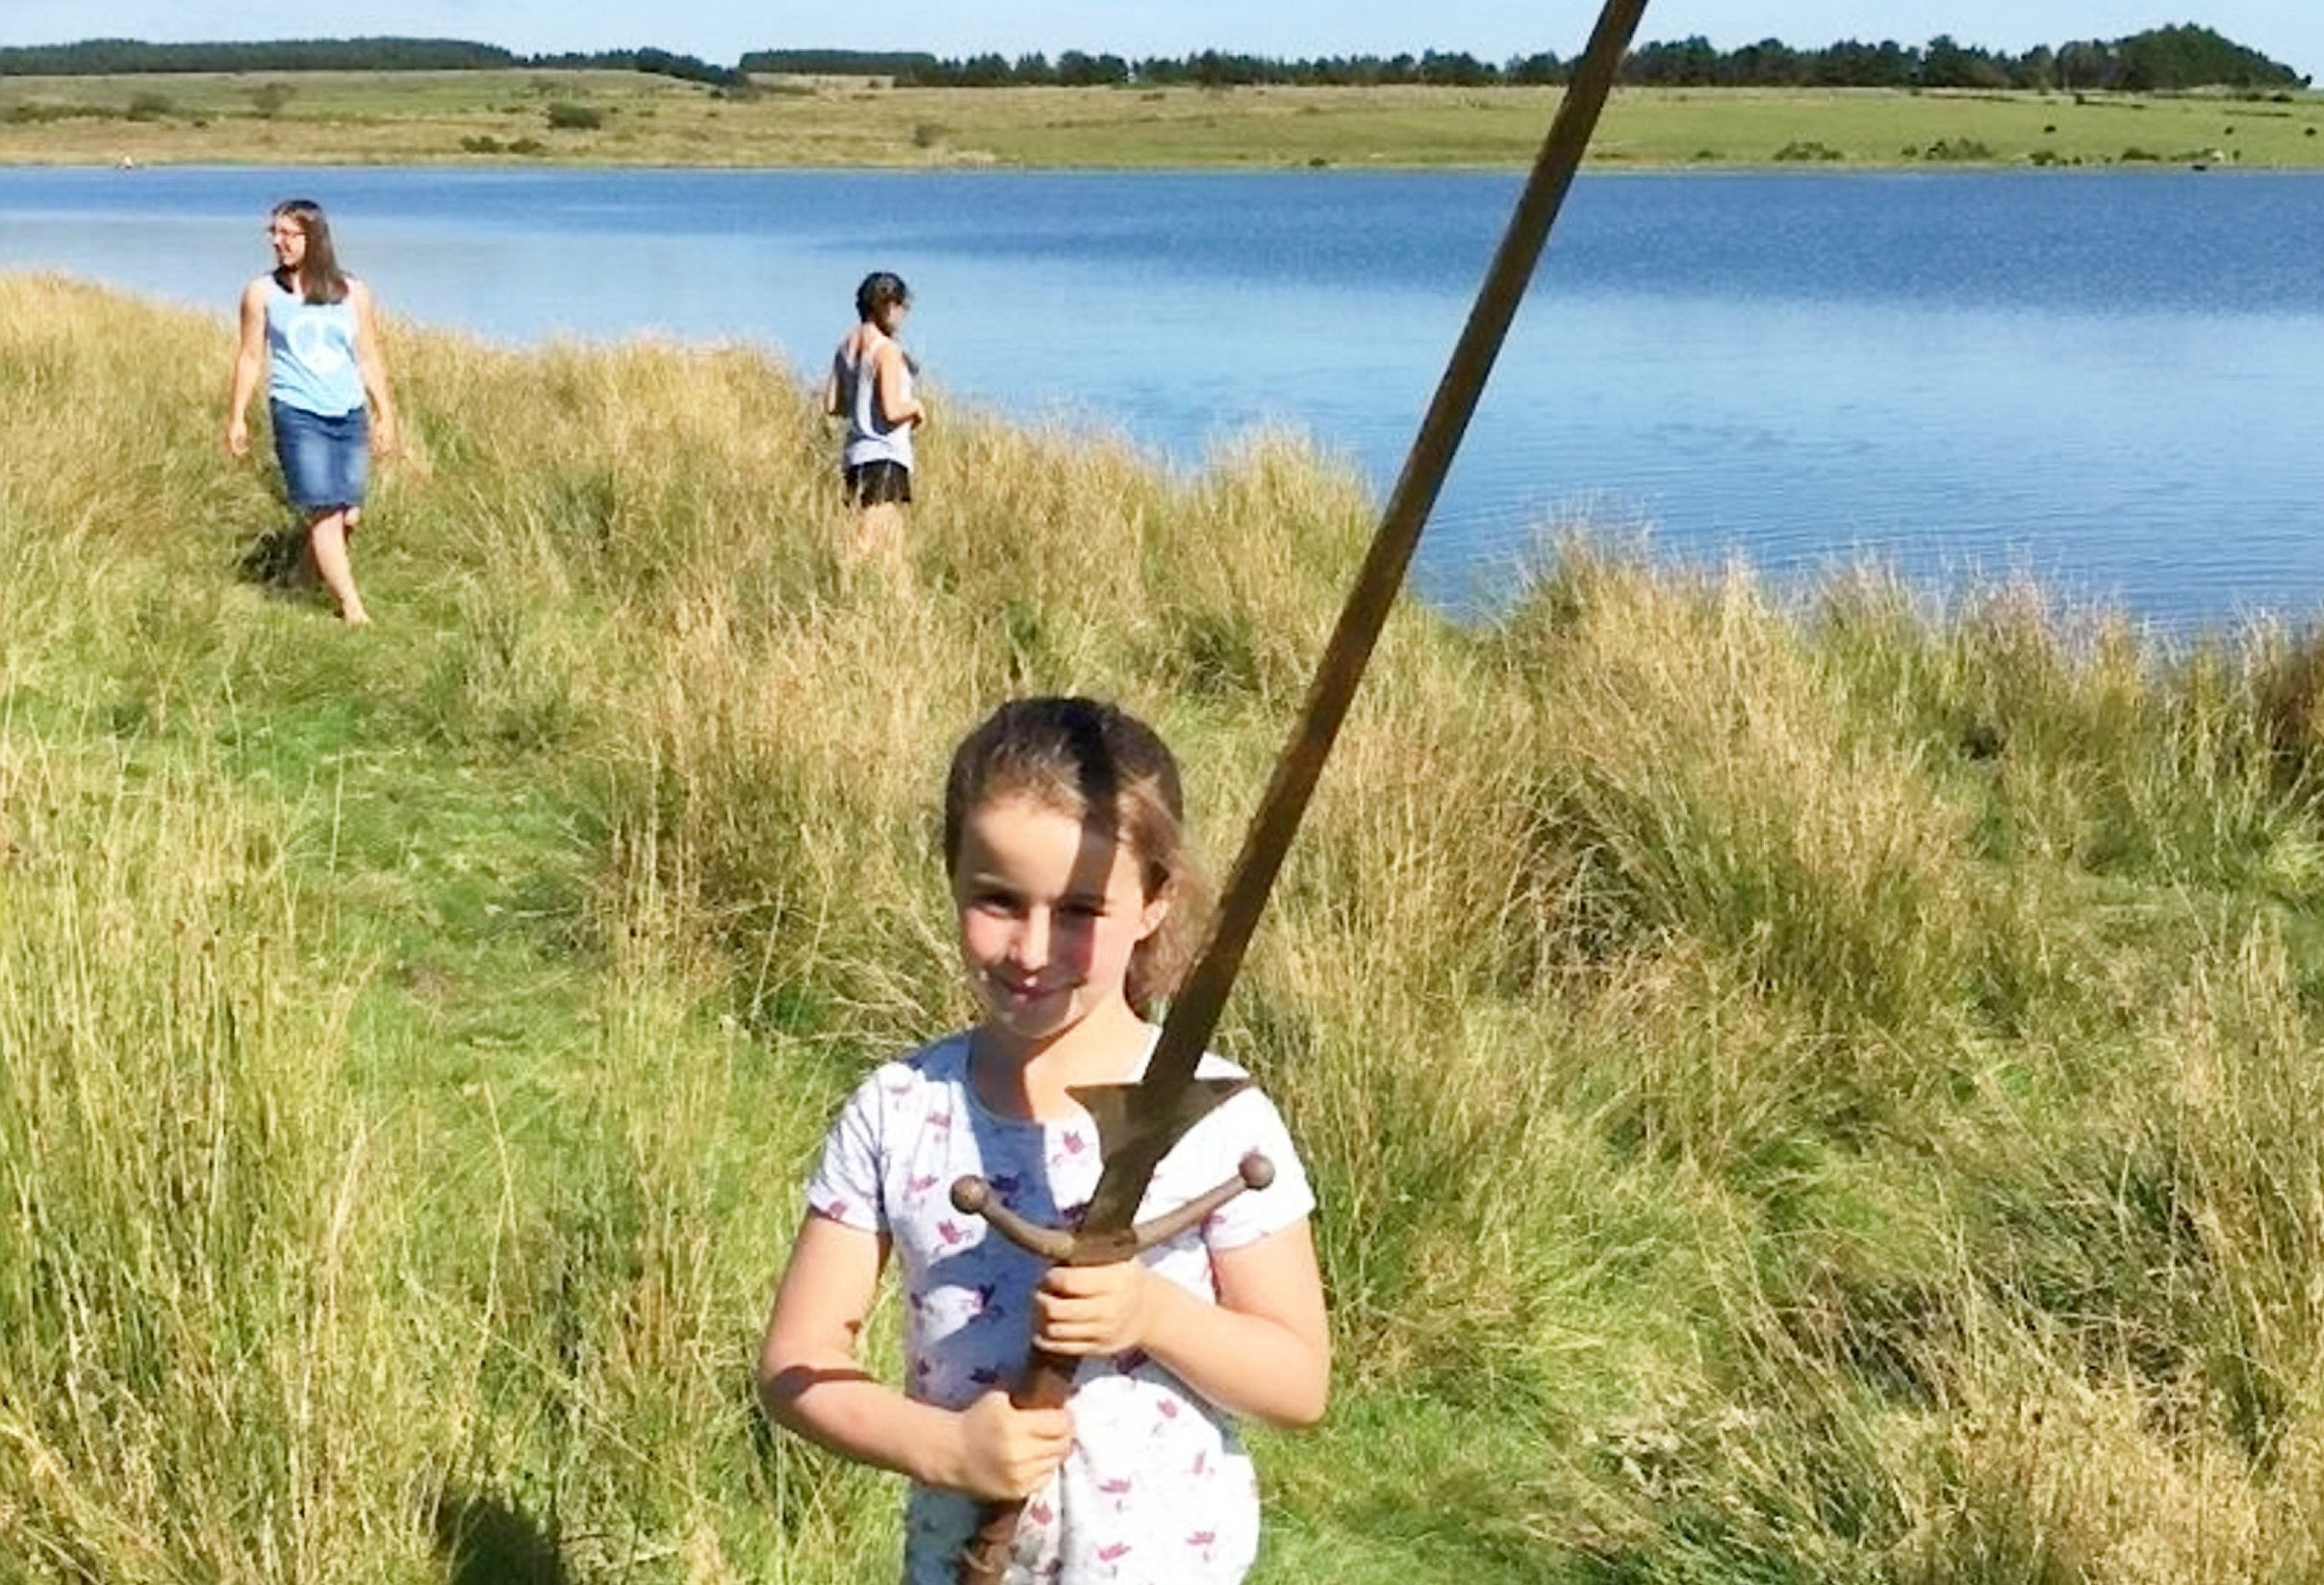 Schoolgirl discovers 'Excalibur' sword in lake from Arthur legend